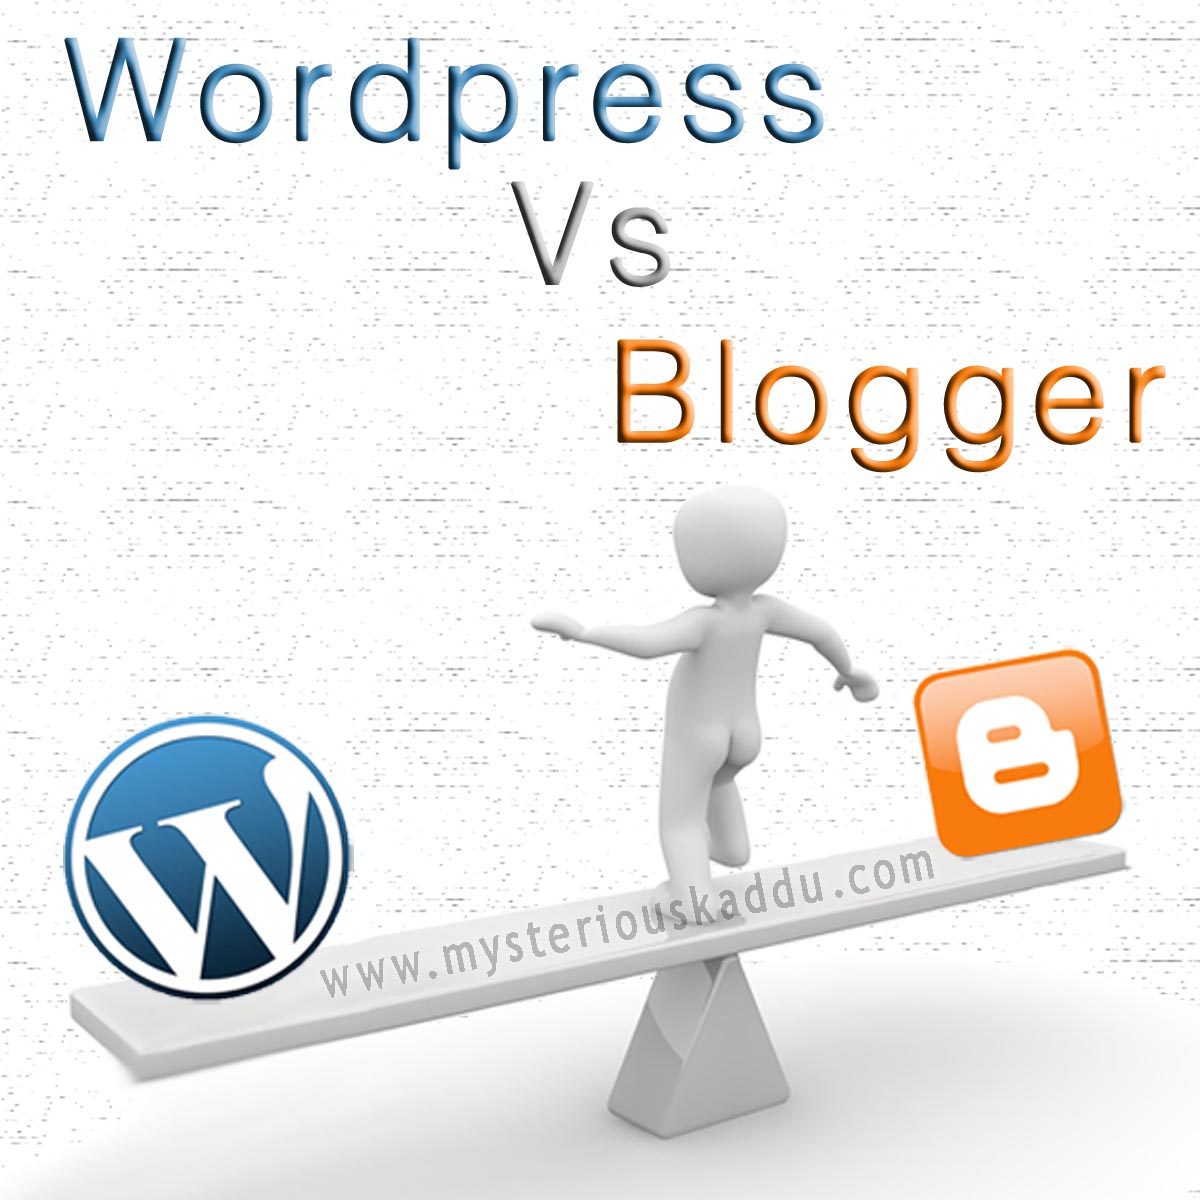 Wordpress Vs. Blogger: Which Is Better?